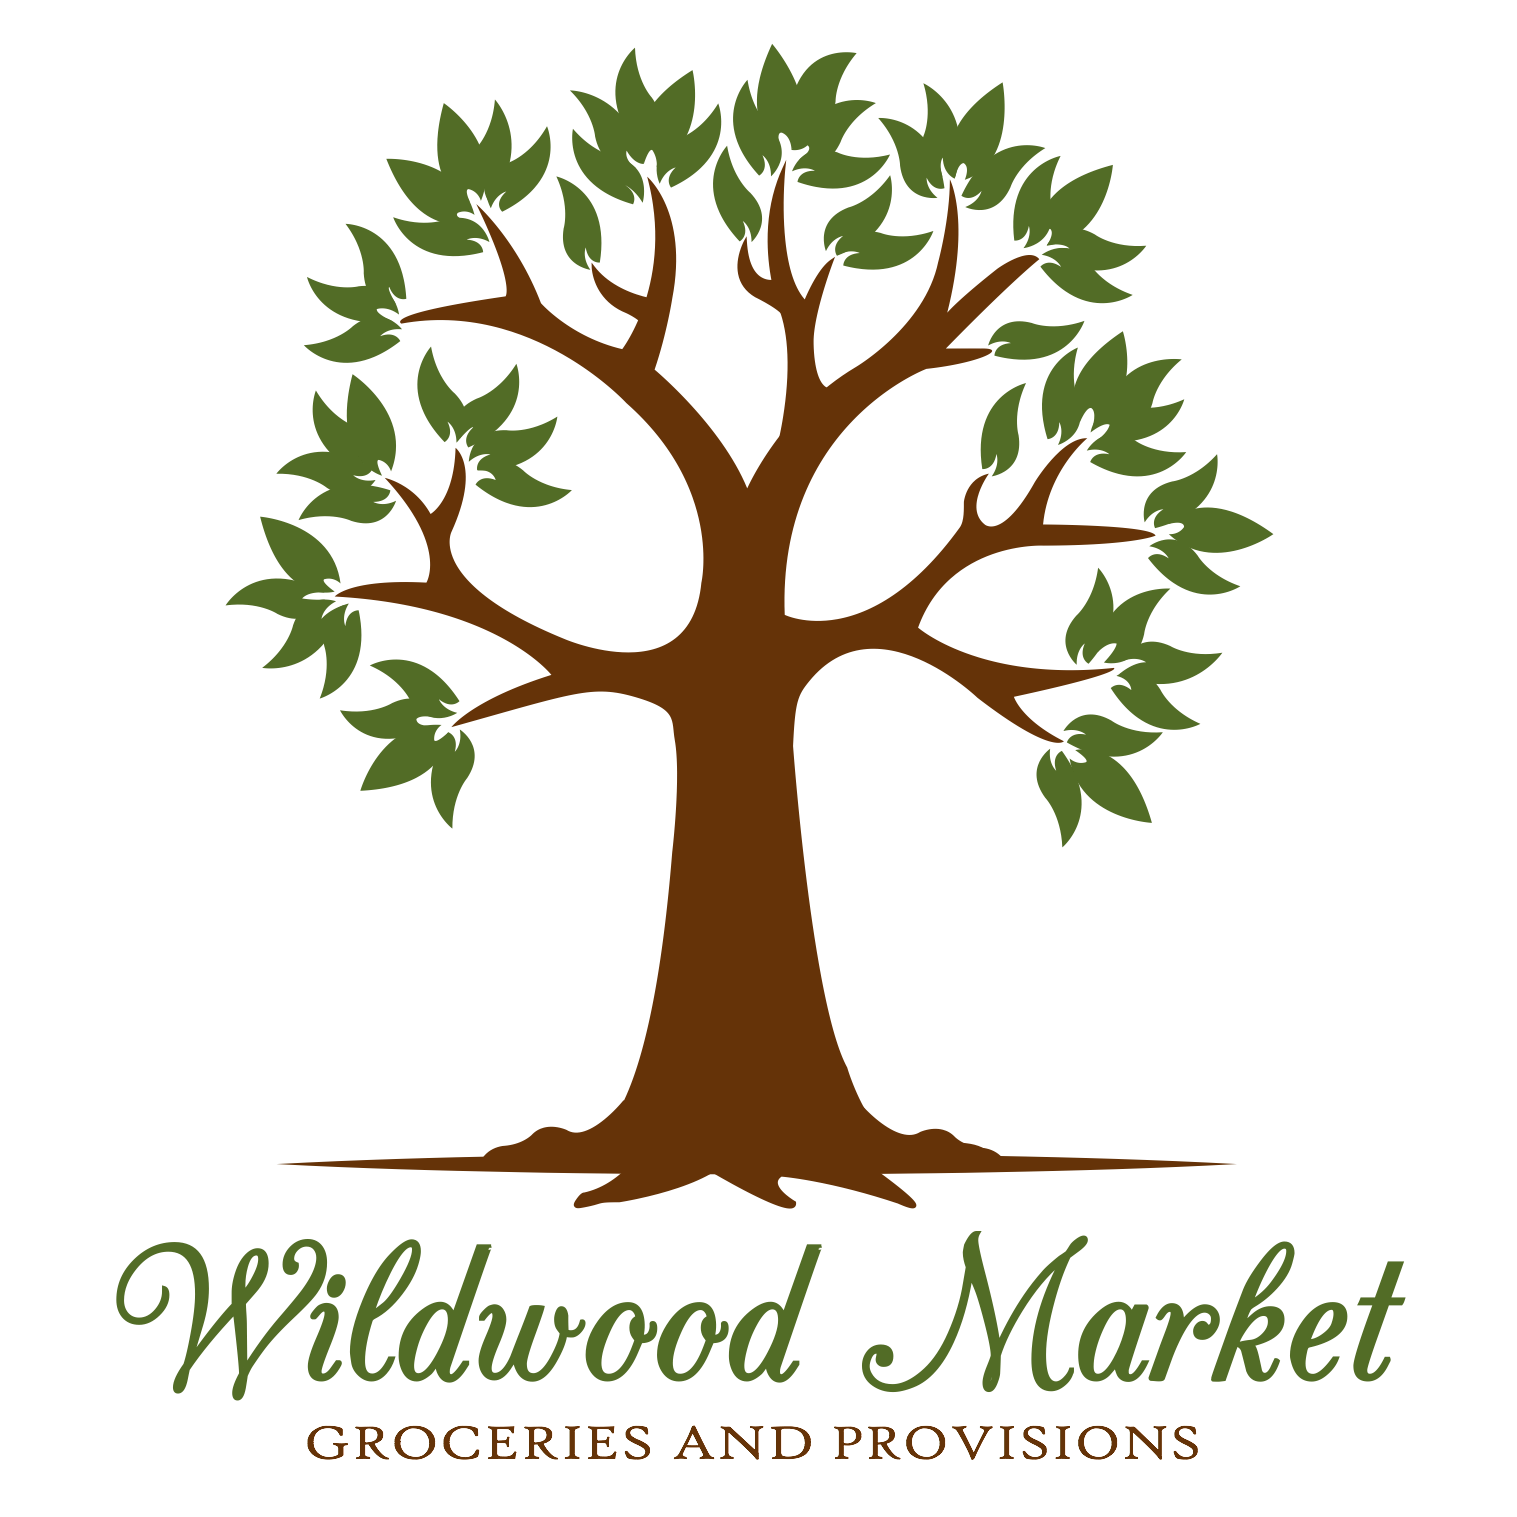 - Place an order for pickup at Wildwood Market. Available Nov 20th and 21st!